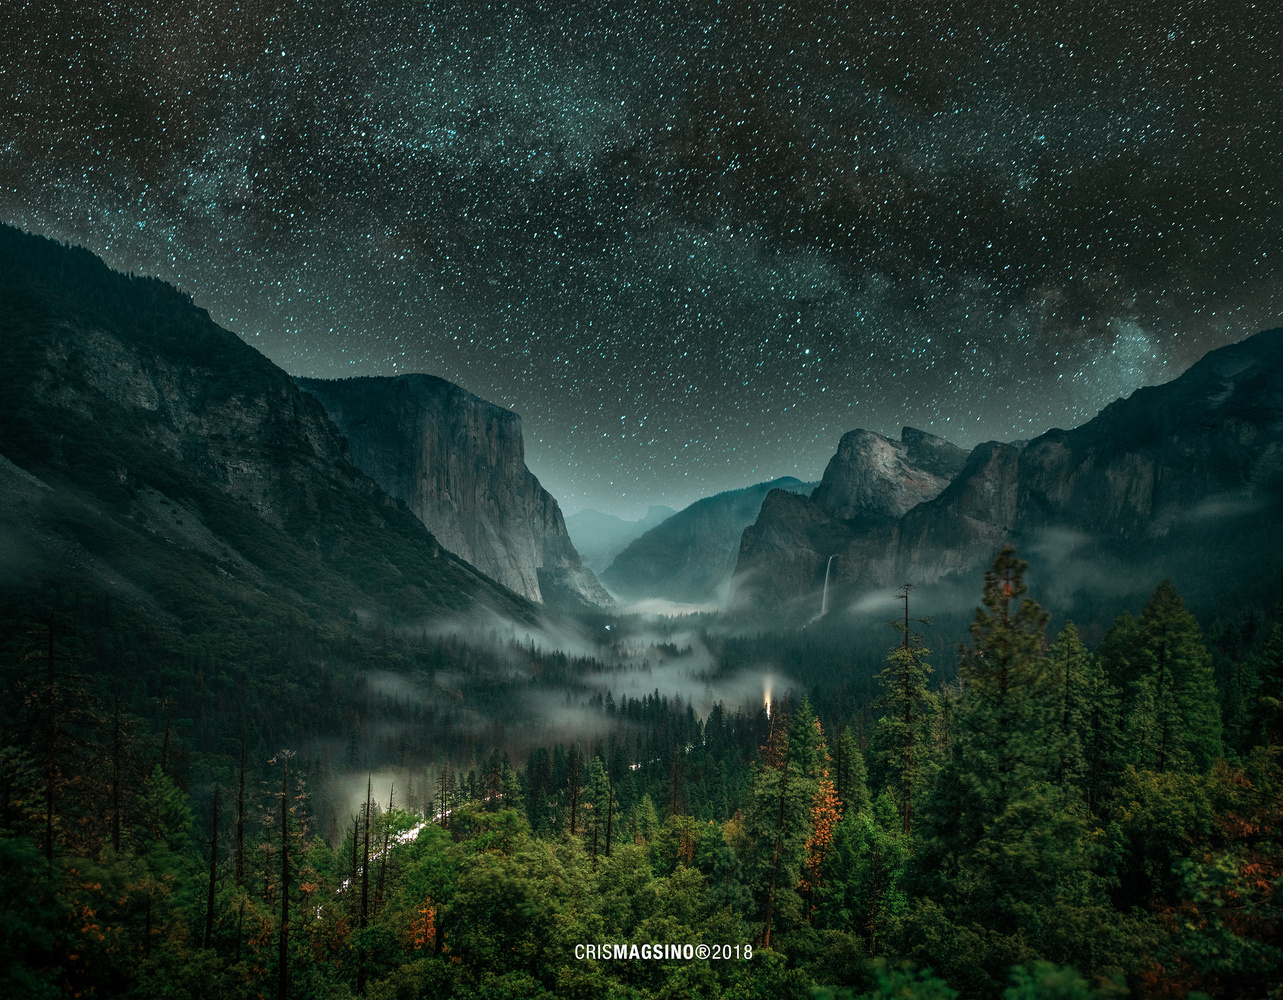 The Lights of Yosemite by Cris Magsino